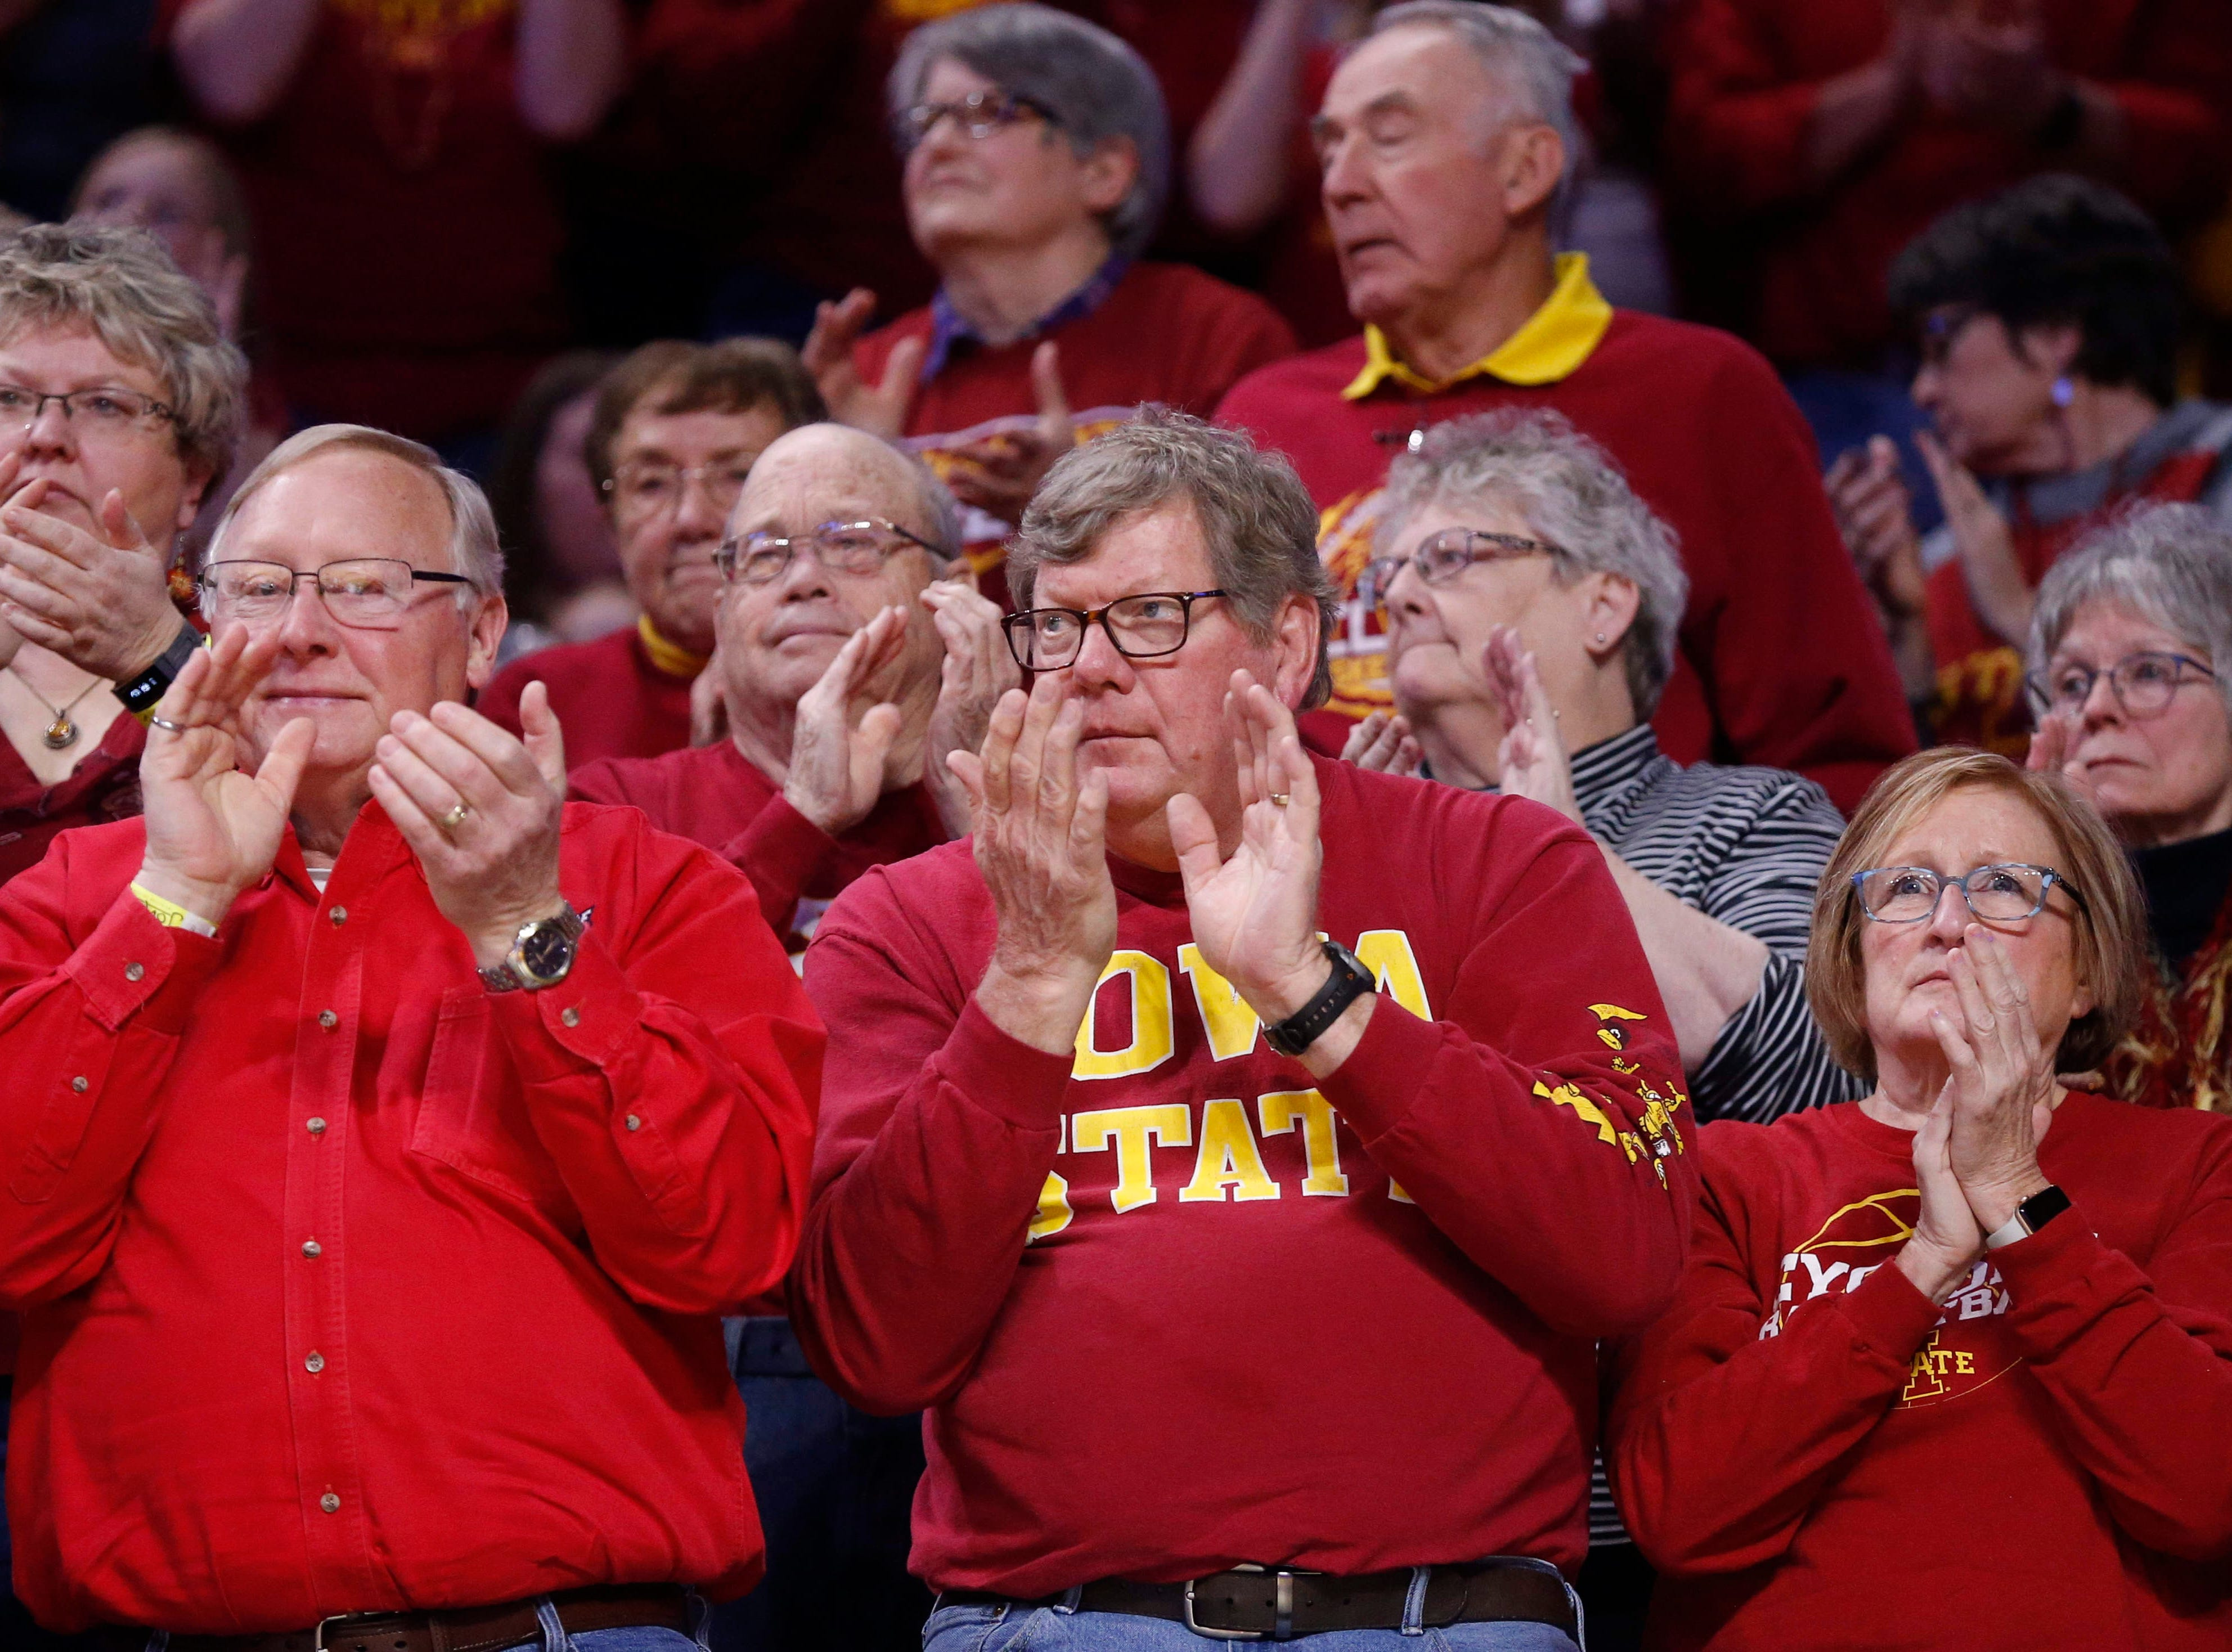 Iowa State fans cheer on the Cyclone women's basketball team against New Mexico State on Saturday, March 23, 2019, at Hilton Coliseum in Ames.